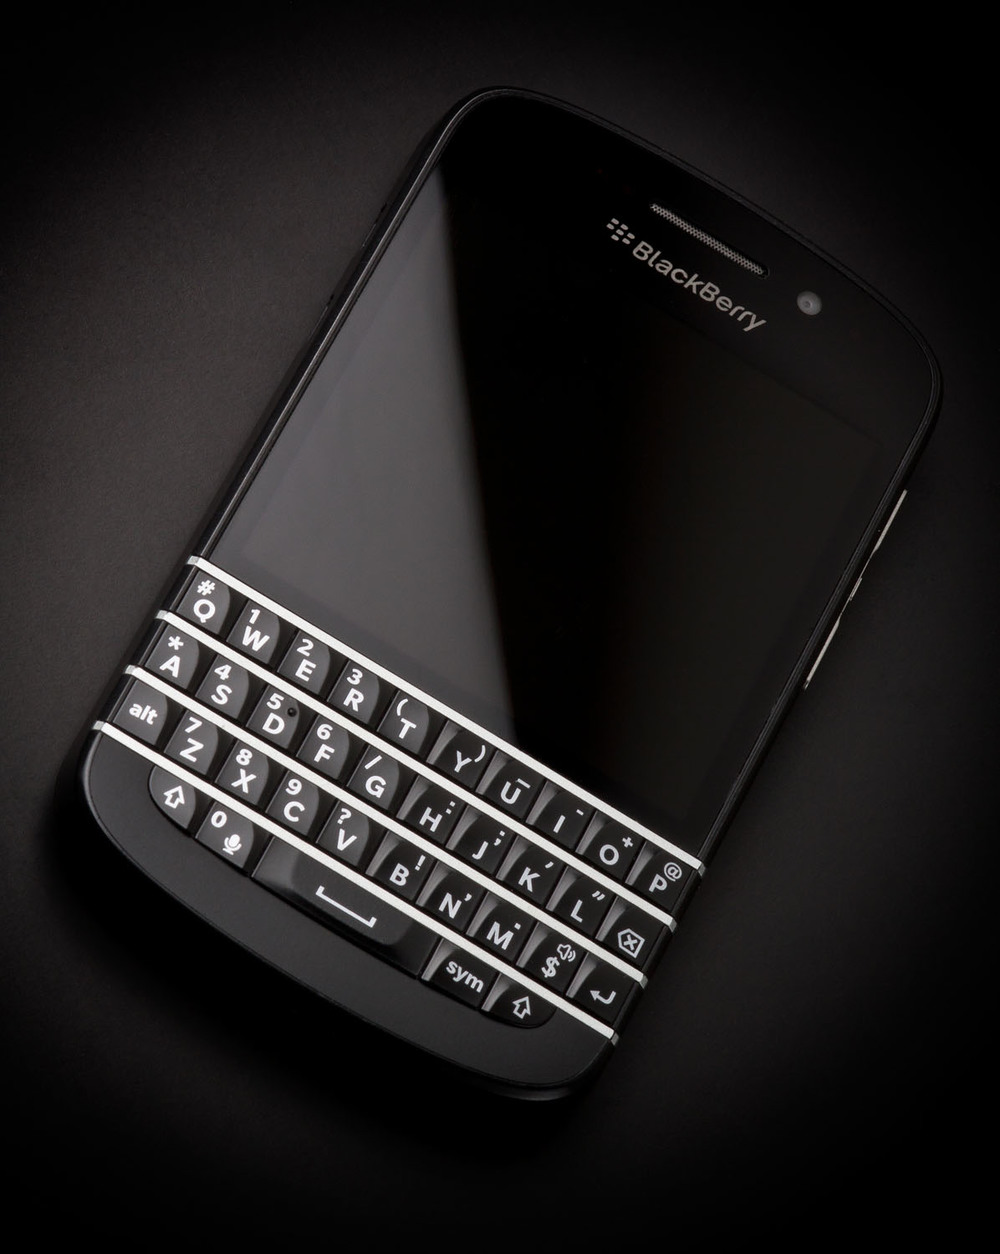 blackberry_crop.jpg